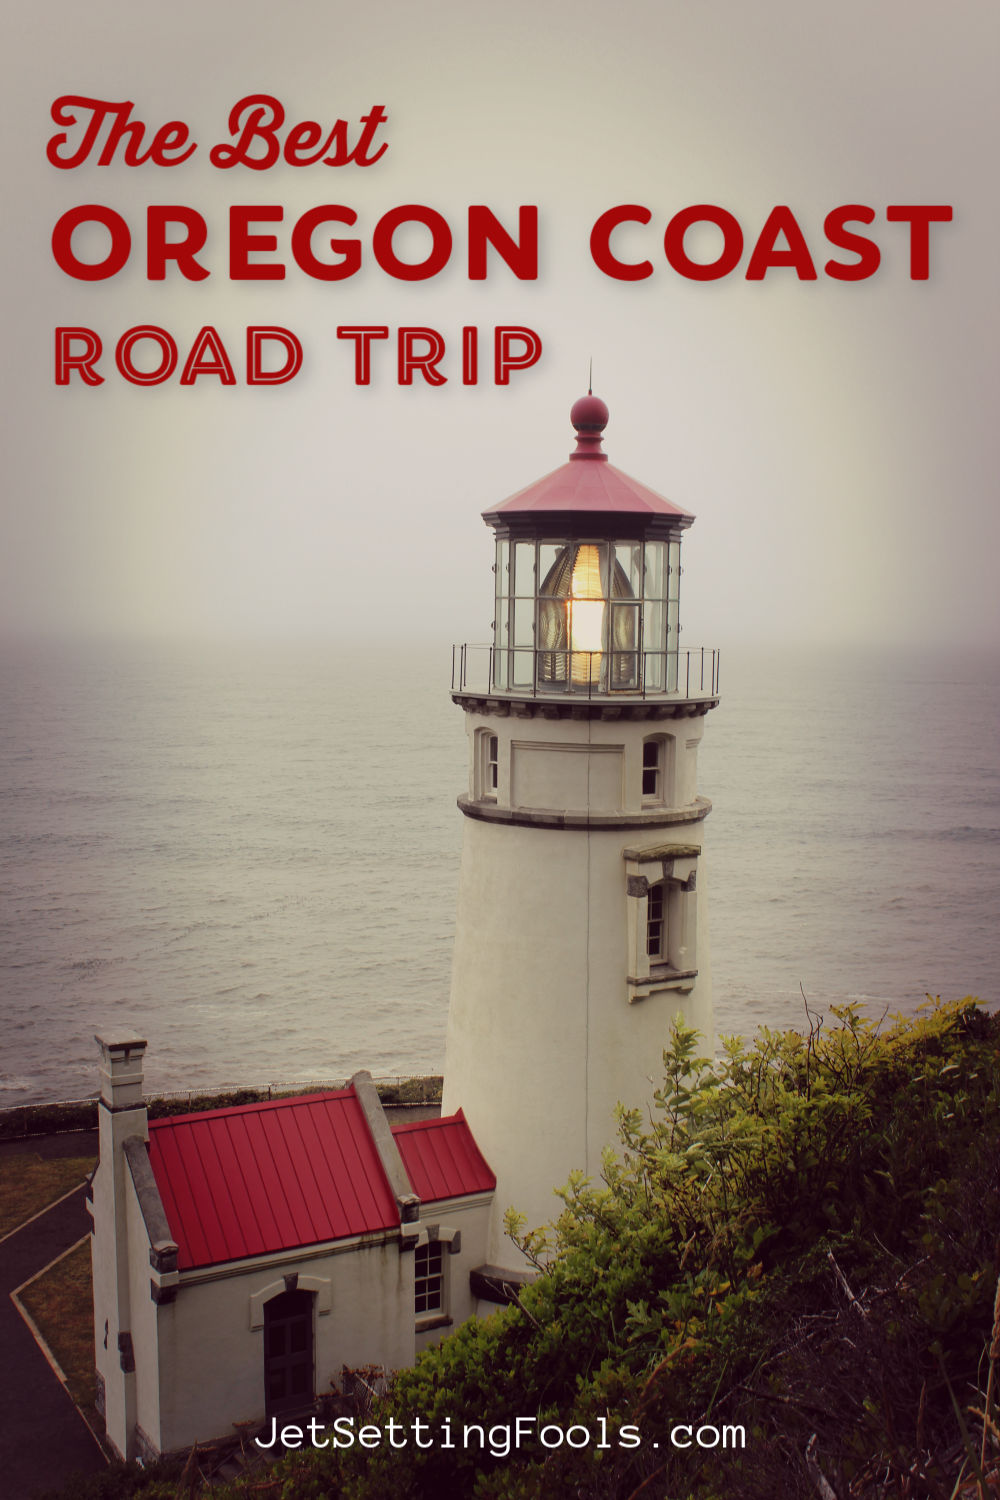 The Best Oregon Coast Road Trip by JetSettingFools.com